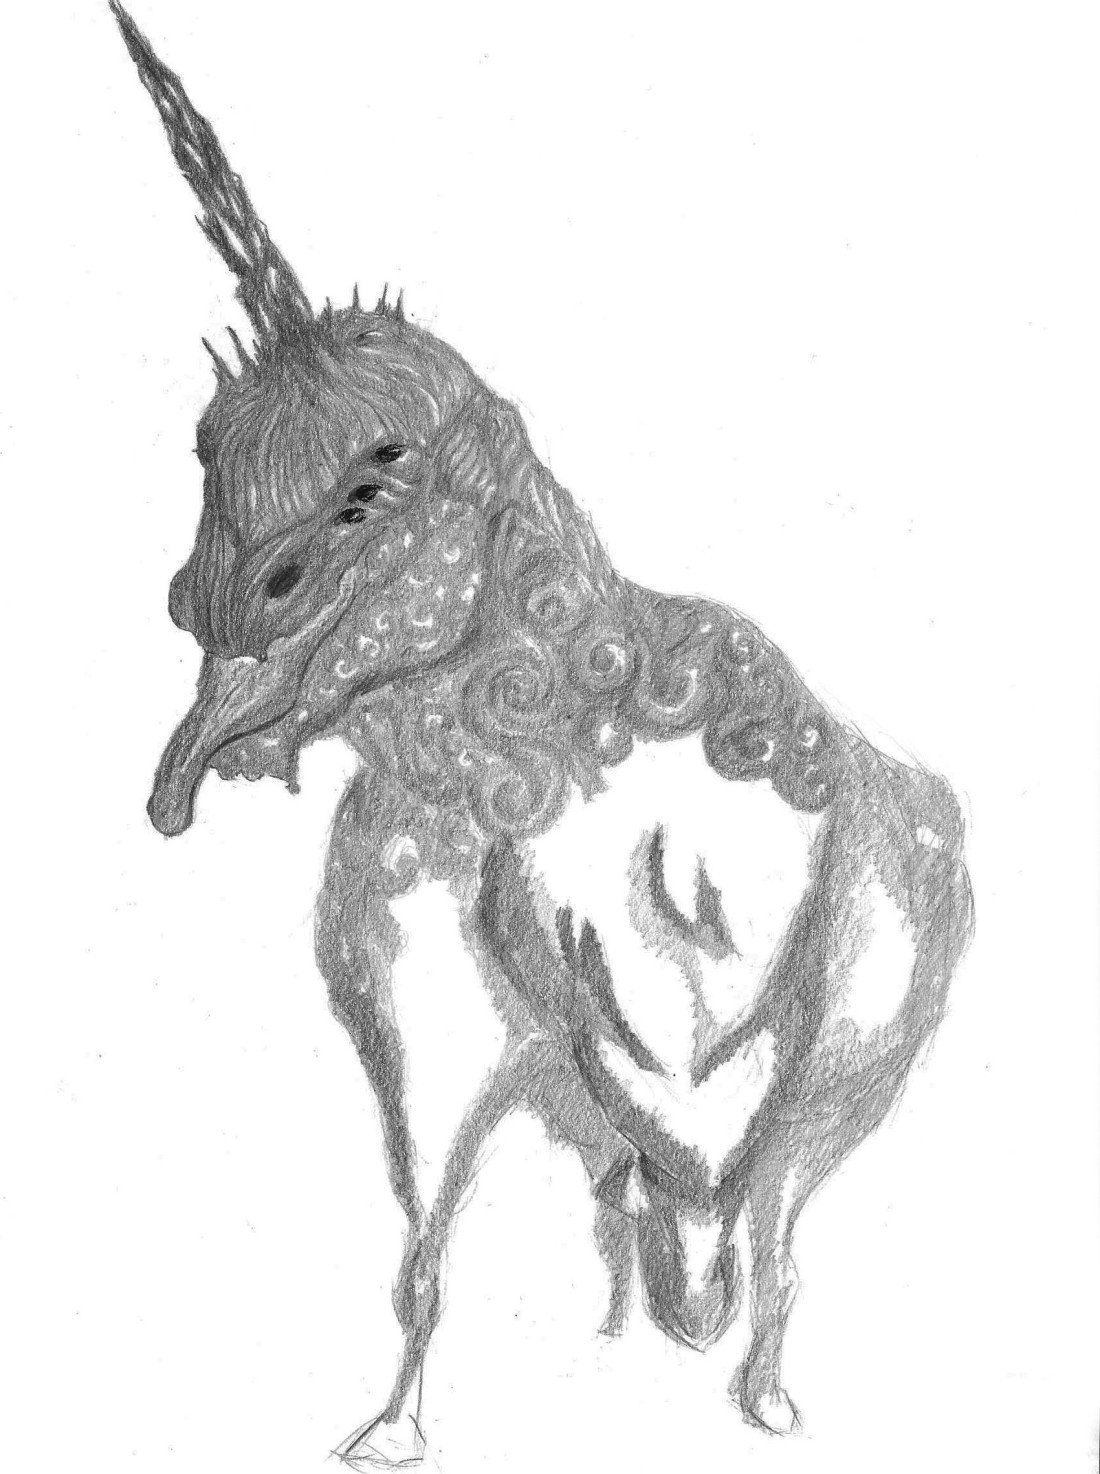 Unicorn drawing on A4 paper